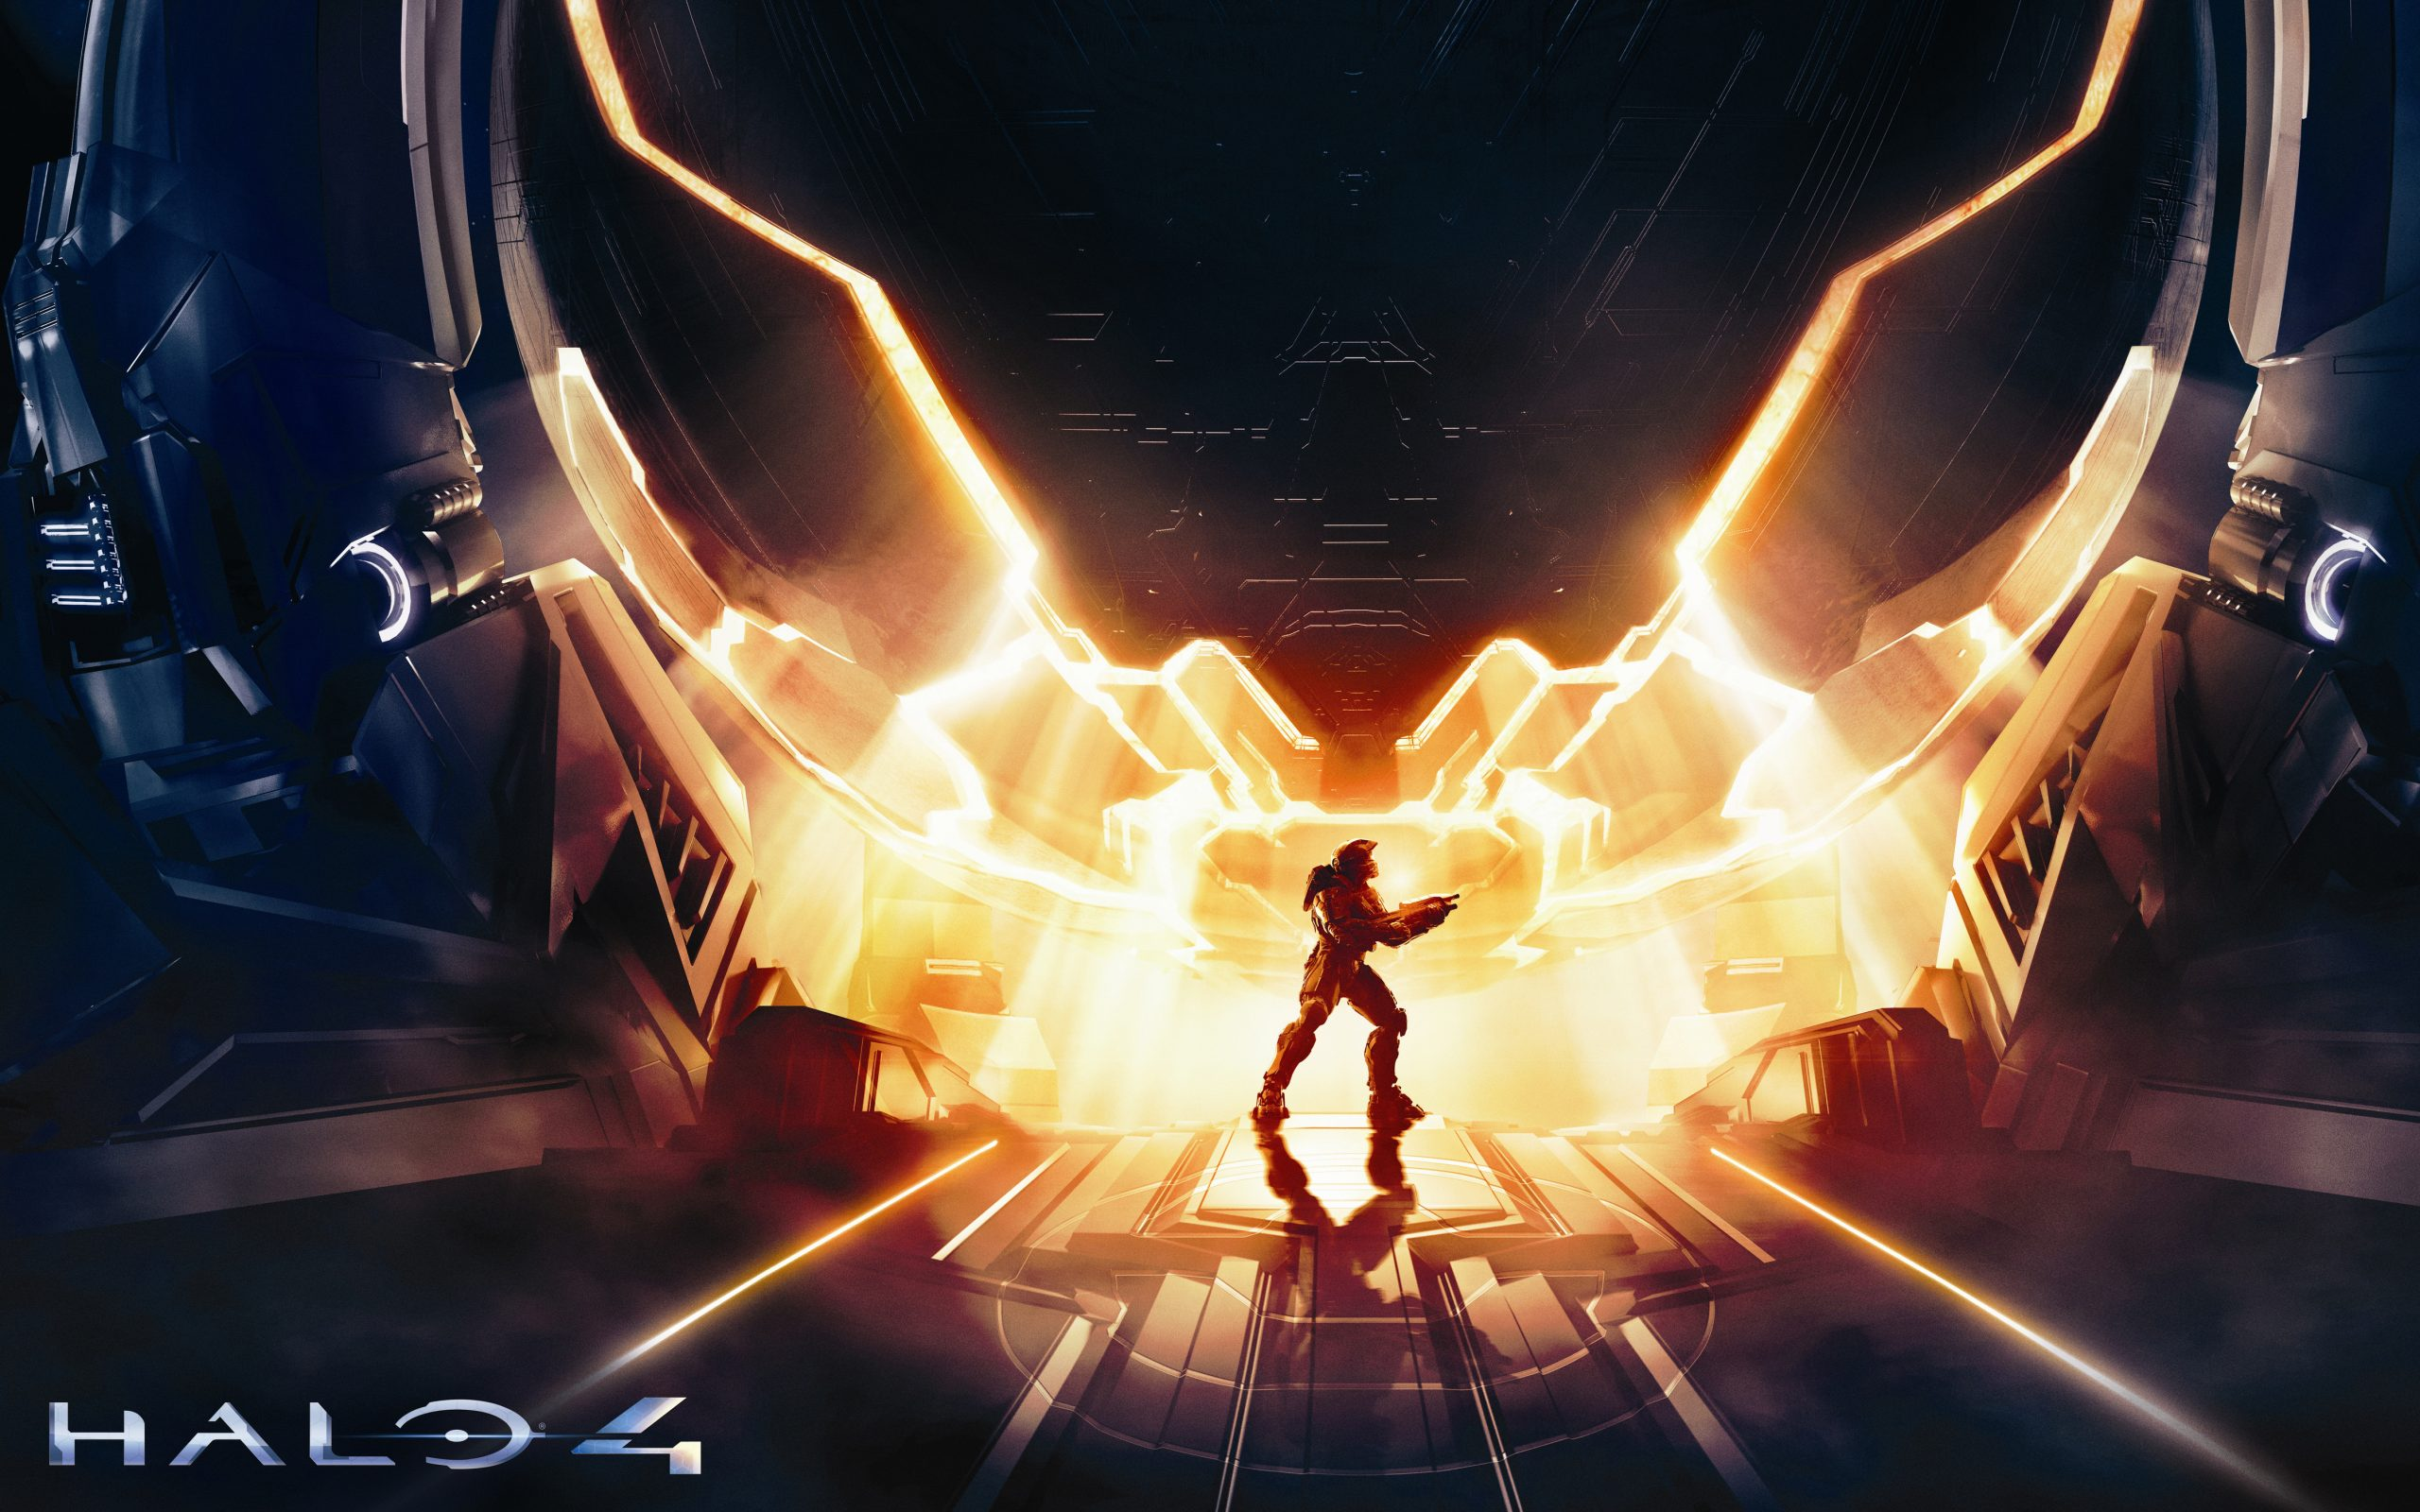 halo xbox game wallpaper 53BY